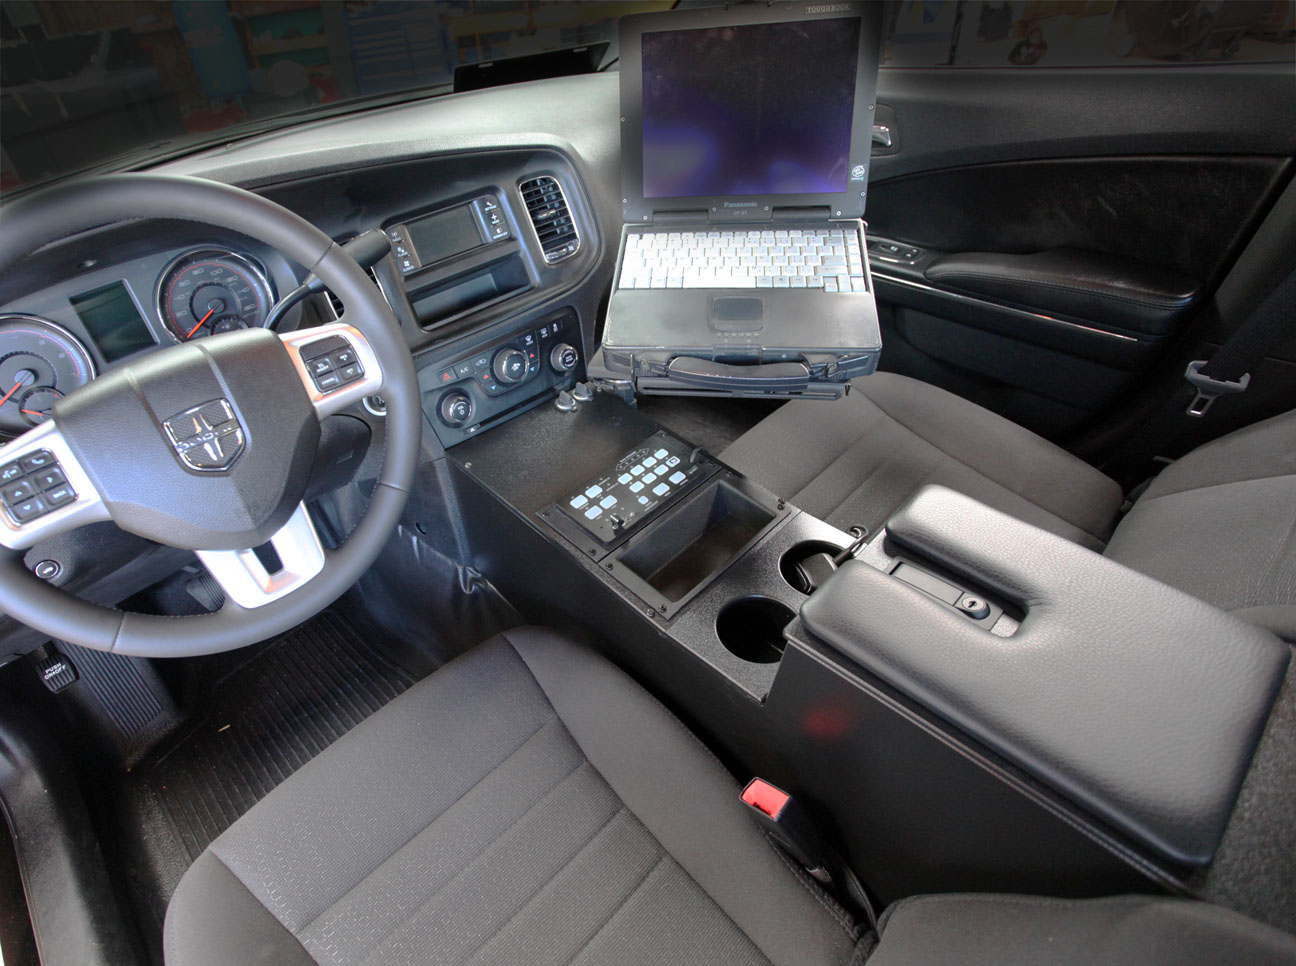 2011 Charger Console with Computer